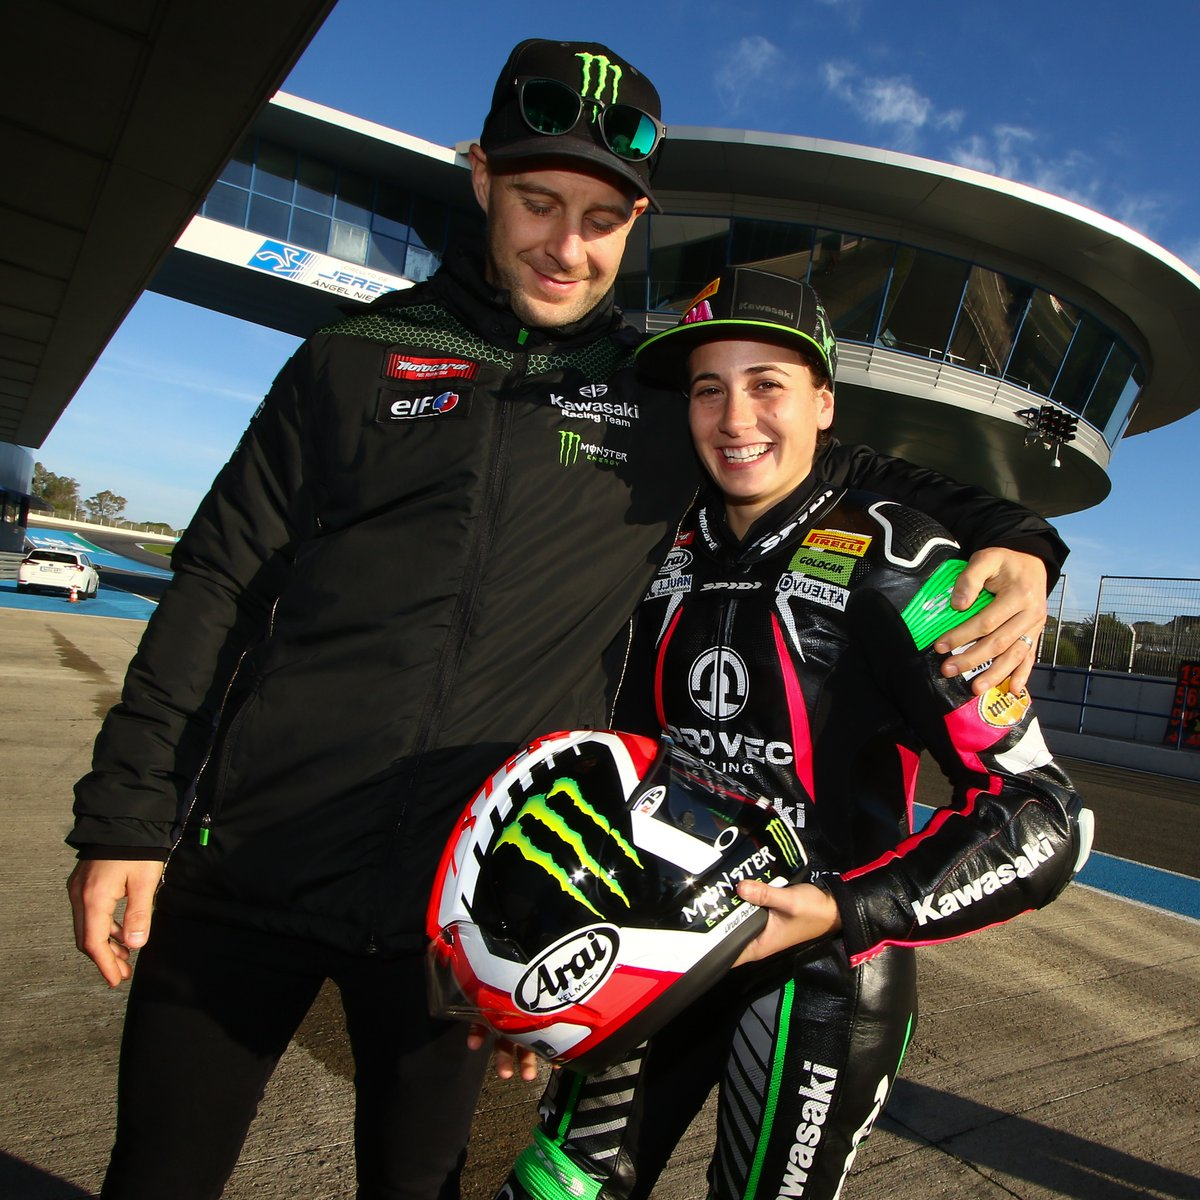 test Twitter Media - From riding bikes to gifting helmets, the Kawasaki bond is strong @AnaCarrasco_22  @jonathanrea #WorldSBK https://t.co/TCN10ETCjs